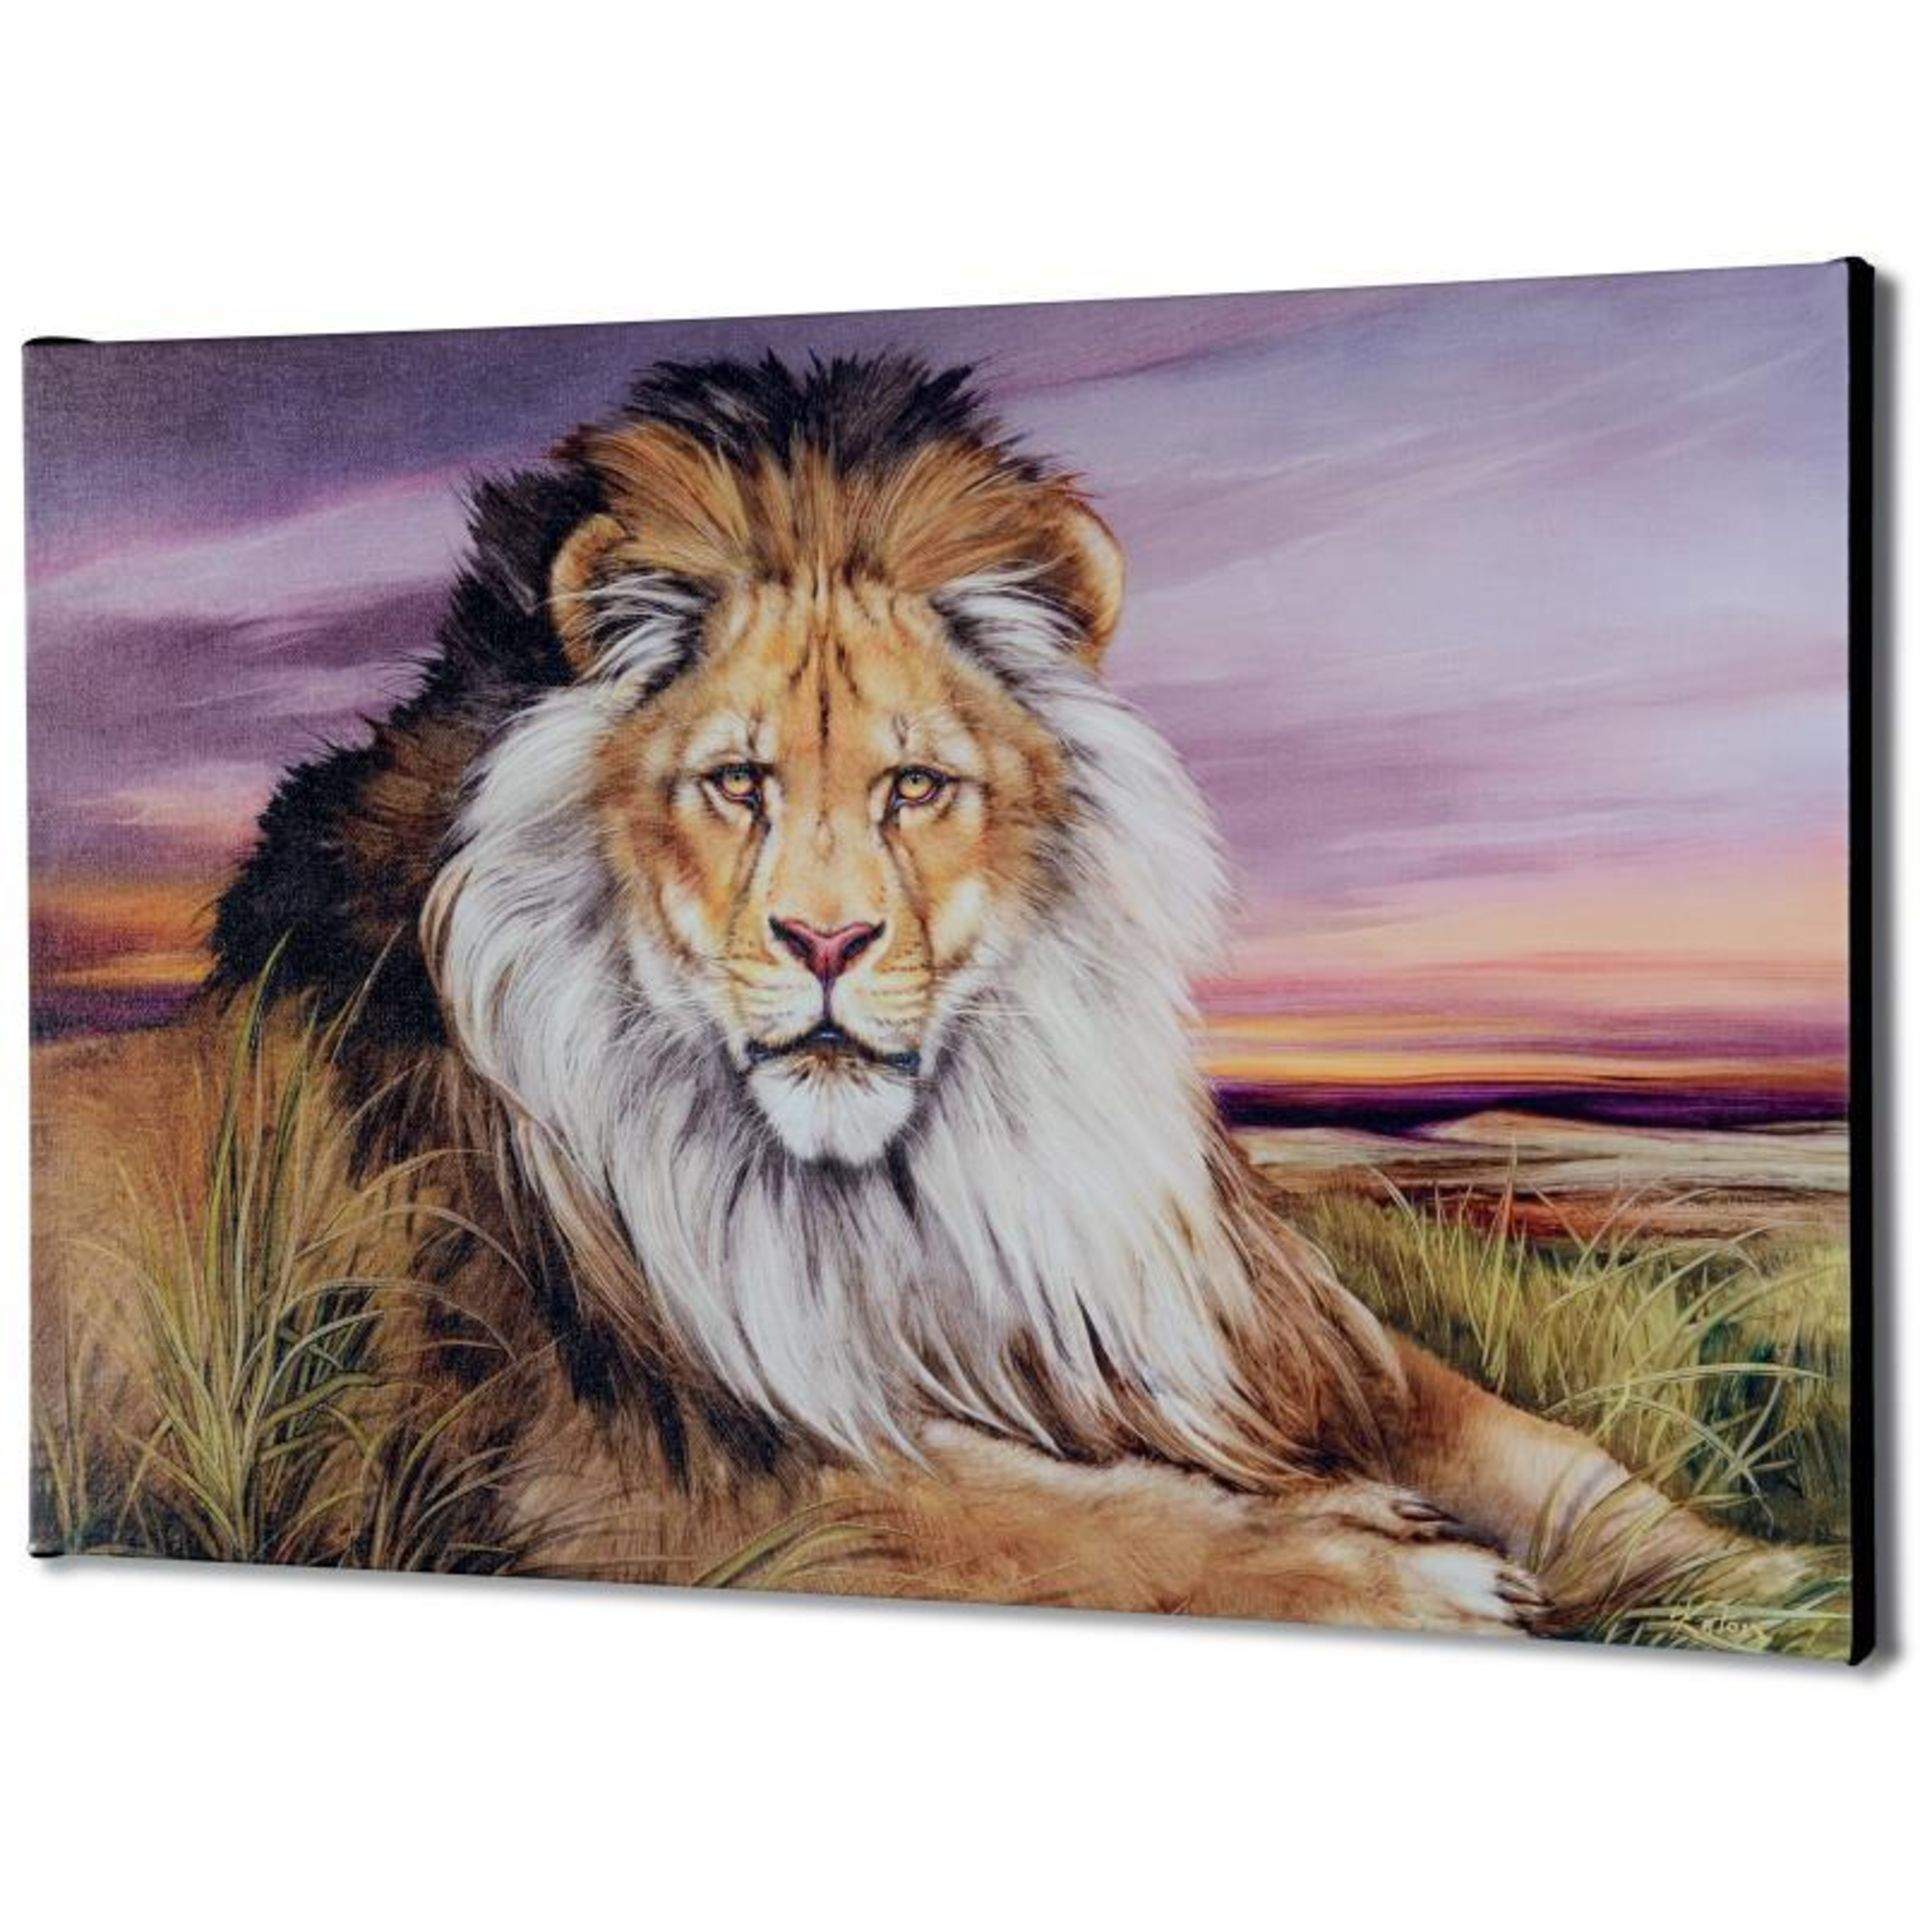 """""""African Lion"""" Limited Edition Giclee on Canvas by Martin Katon, Numbered and Ha - Image 2 of 2"""